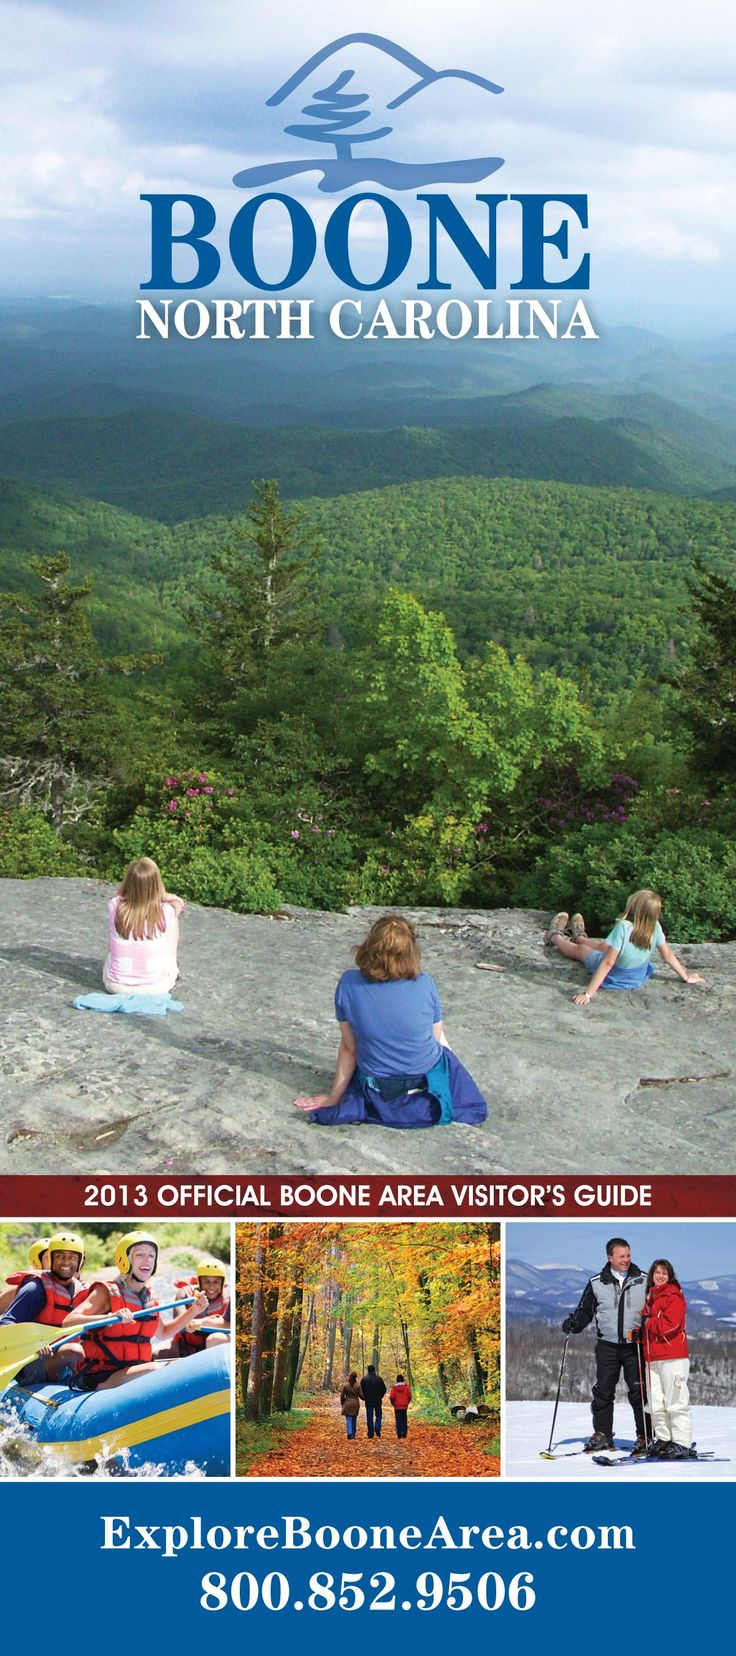 NC Mountains - Official Website for Watauga County and the Boone NC area, Blowing Rock, Valle Crucis